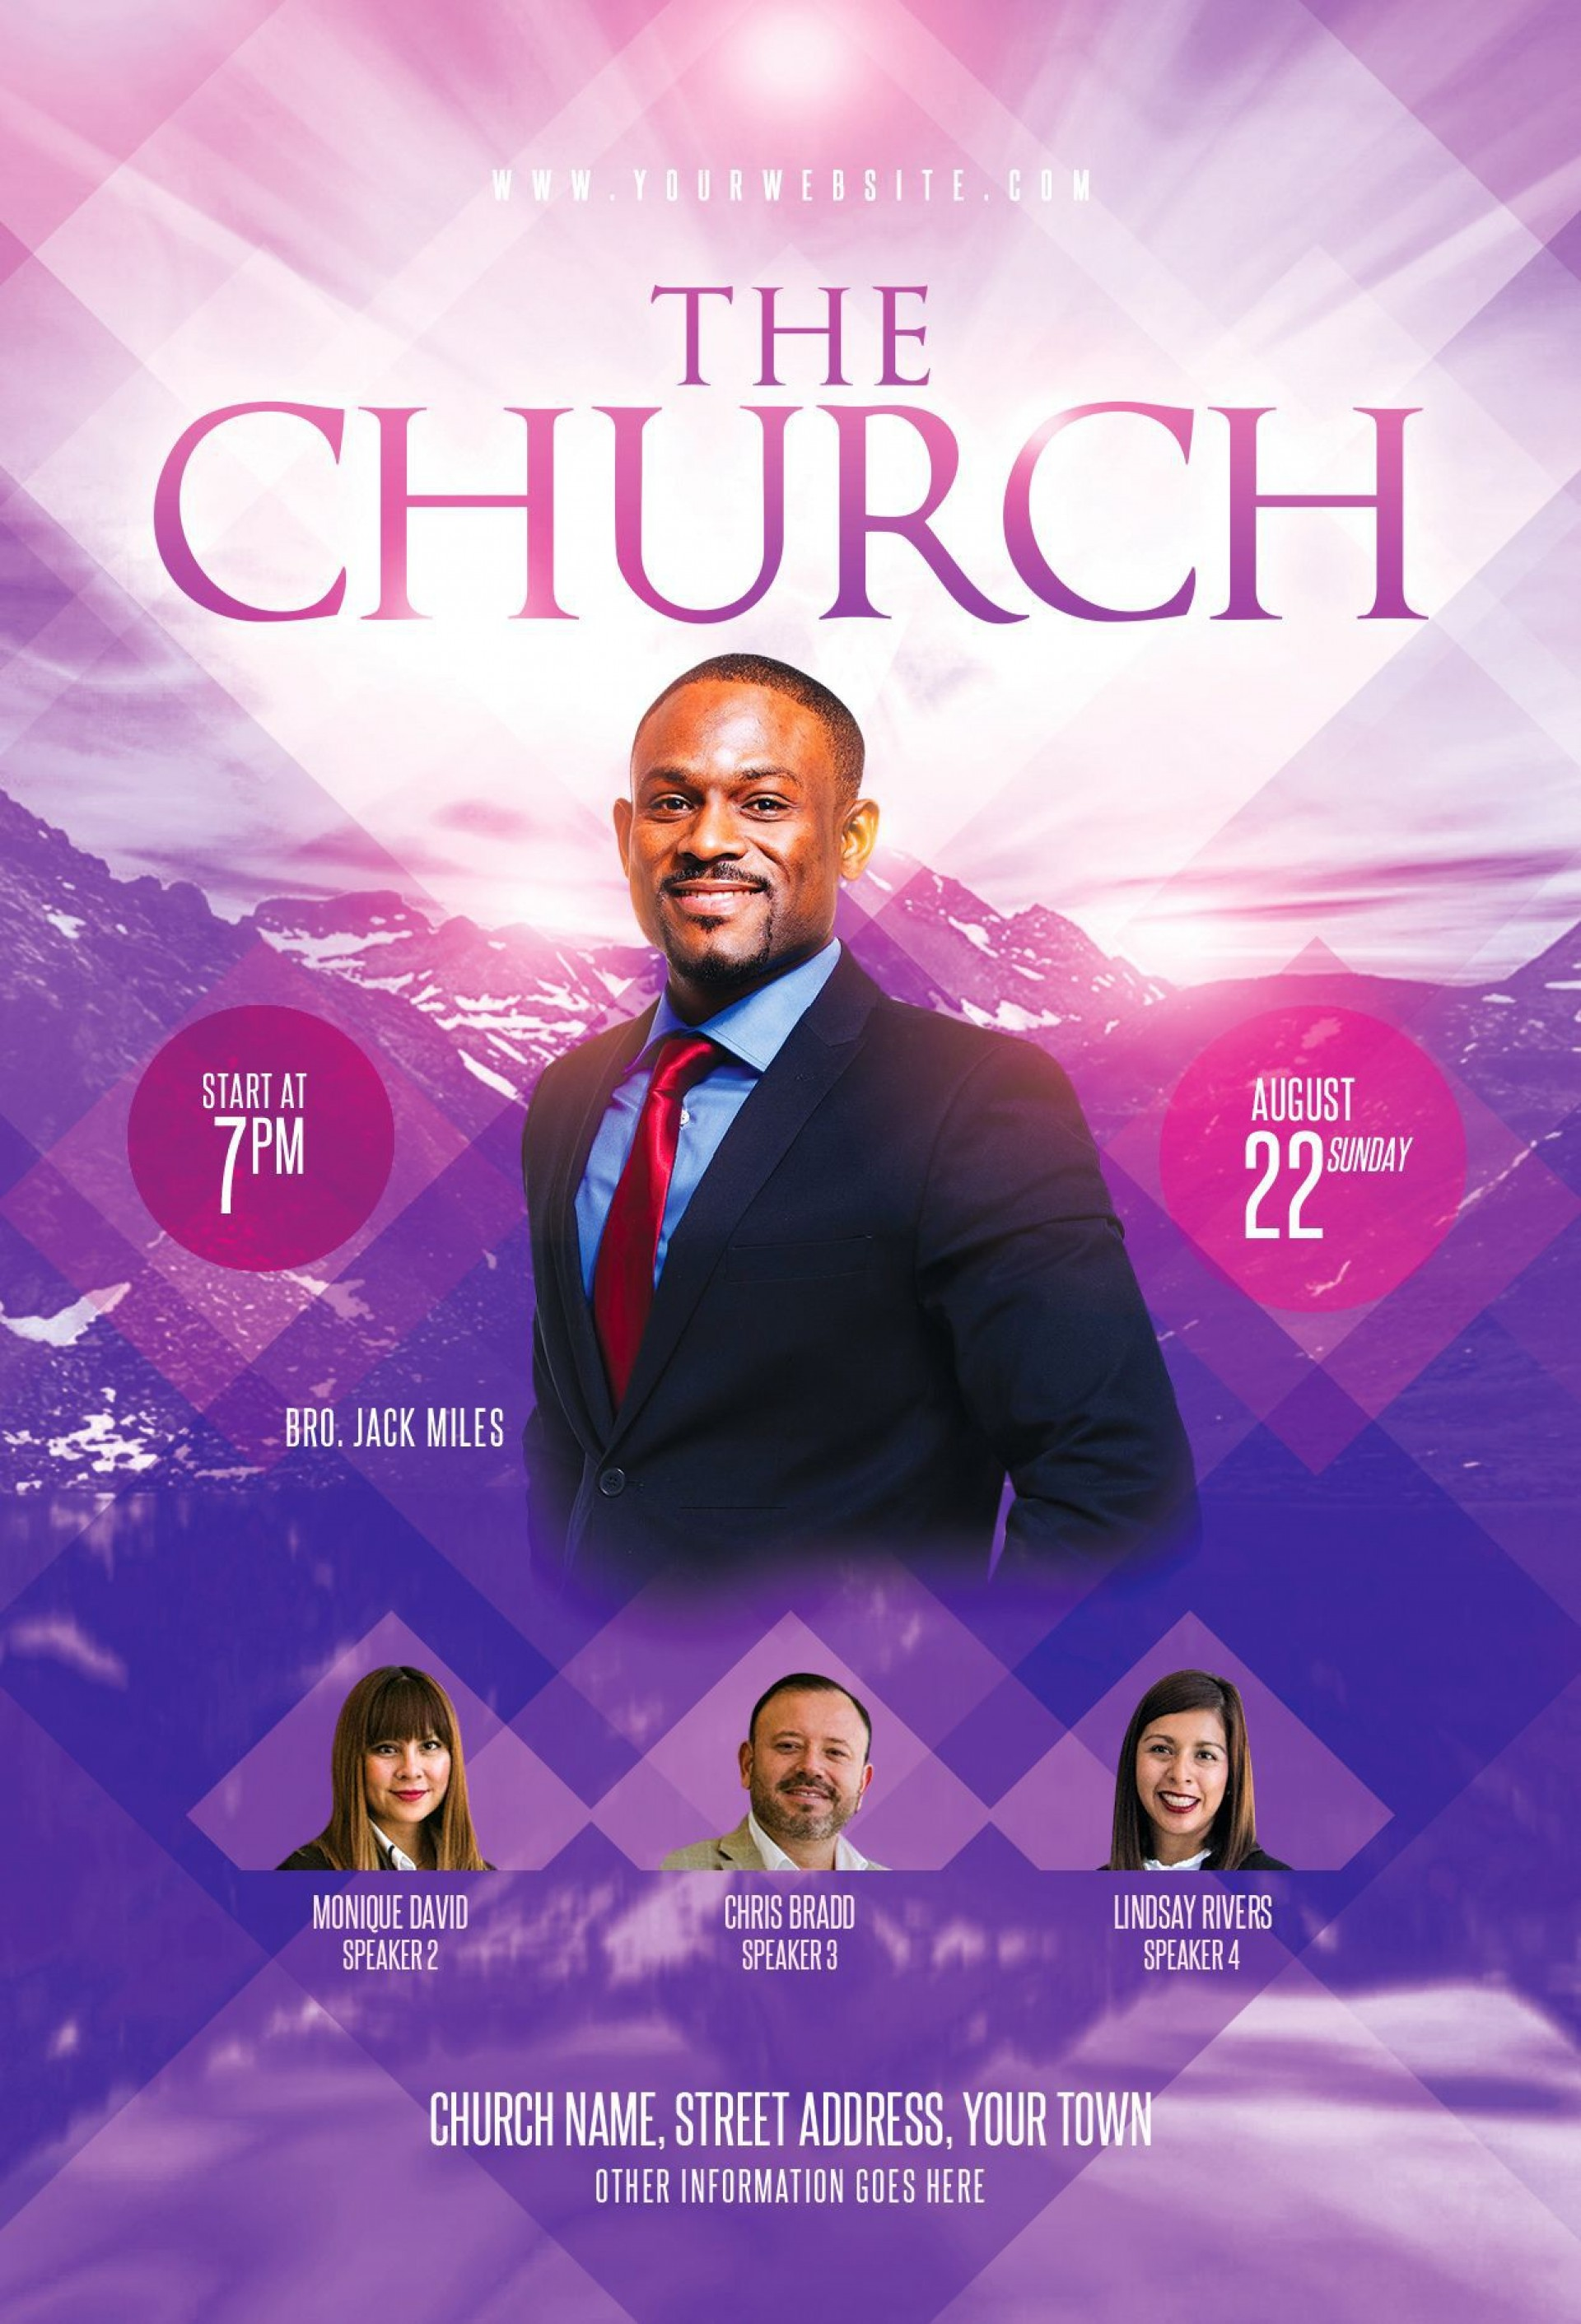 002 Magnificent Church Flyer Template Photoshop Free Image  Psd1920